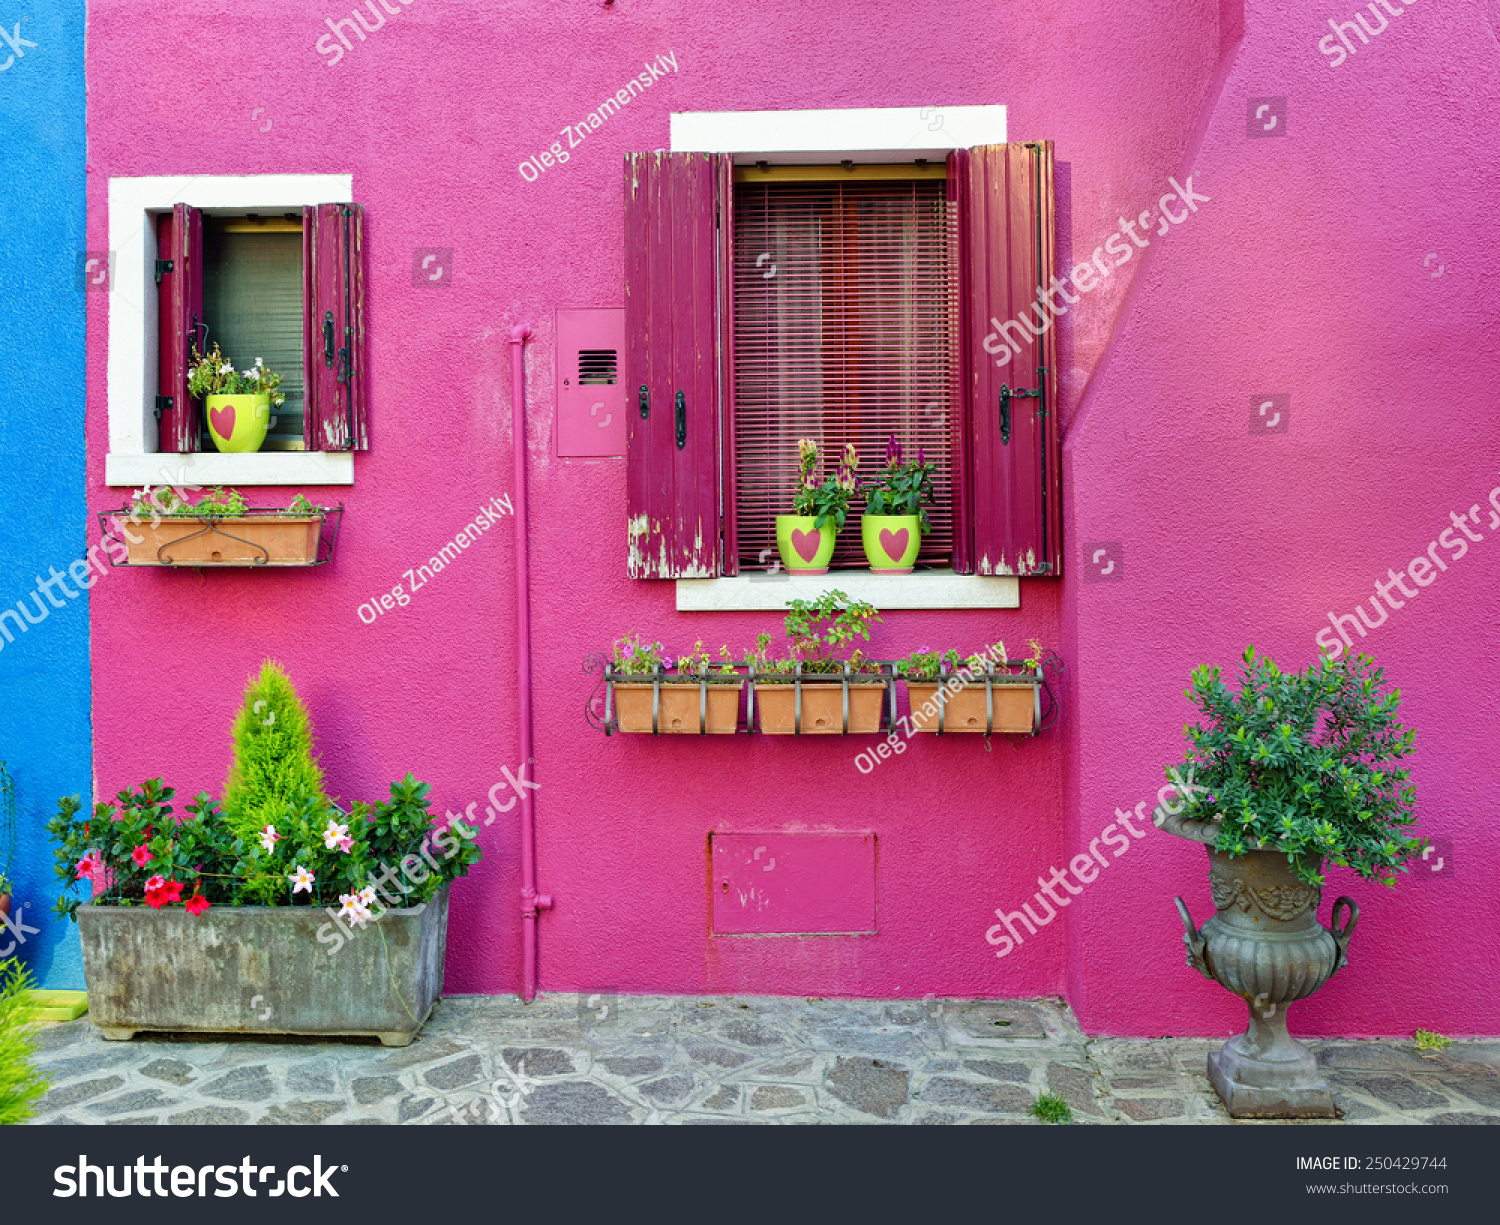 Burano island, Venice. Decorated facade of the house. Colorful ...